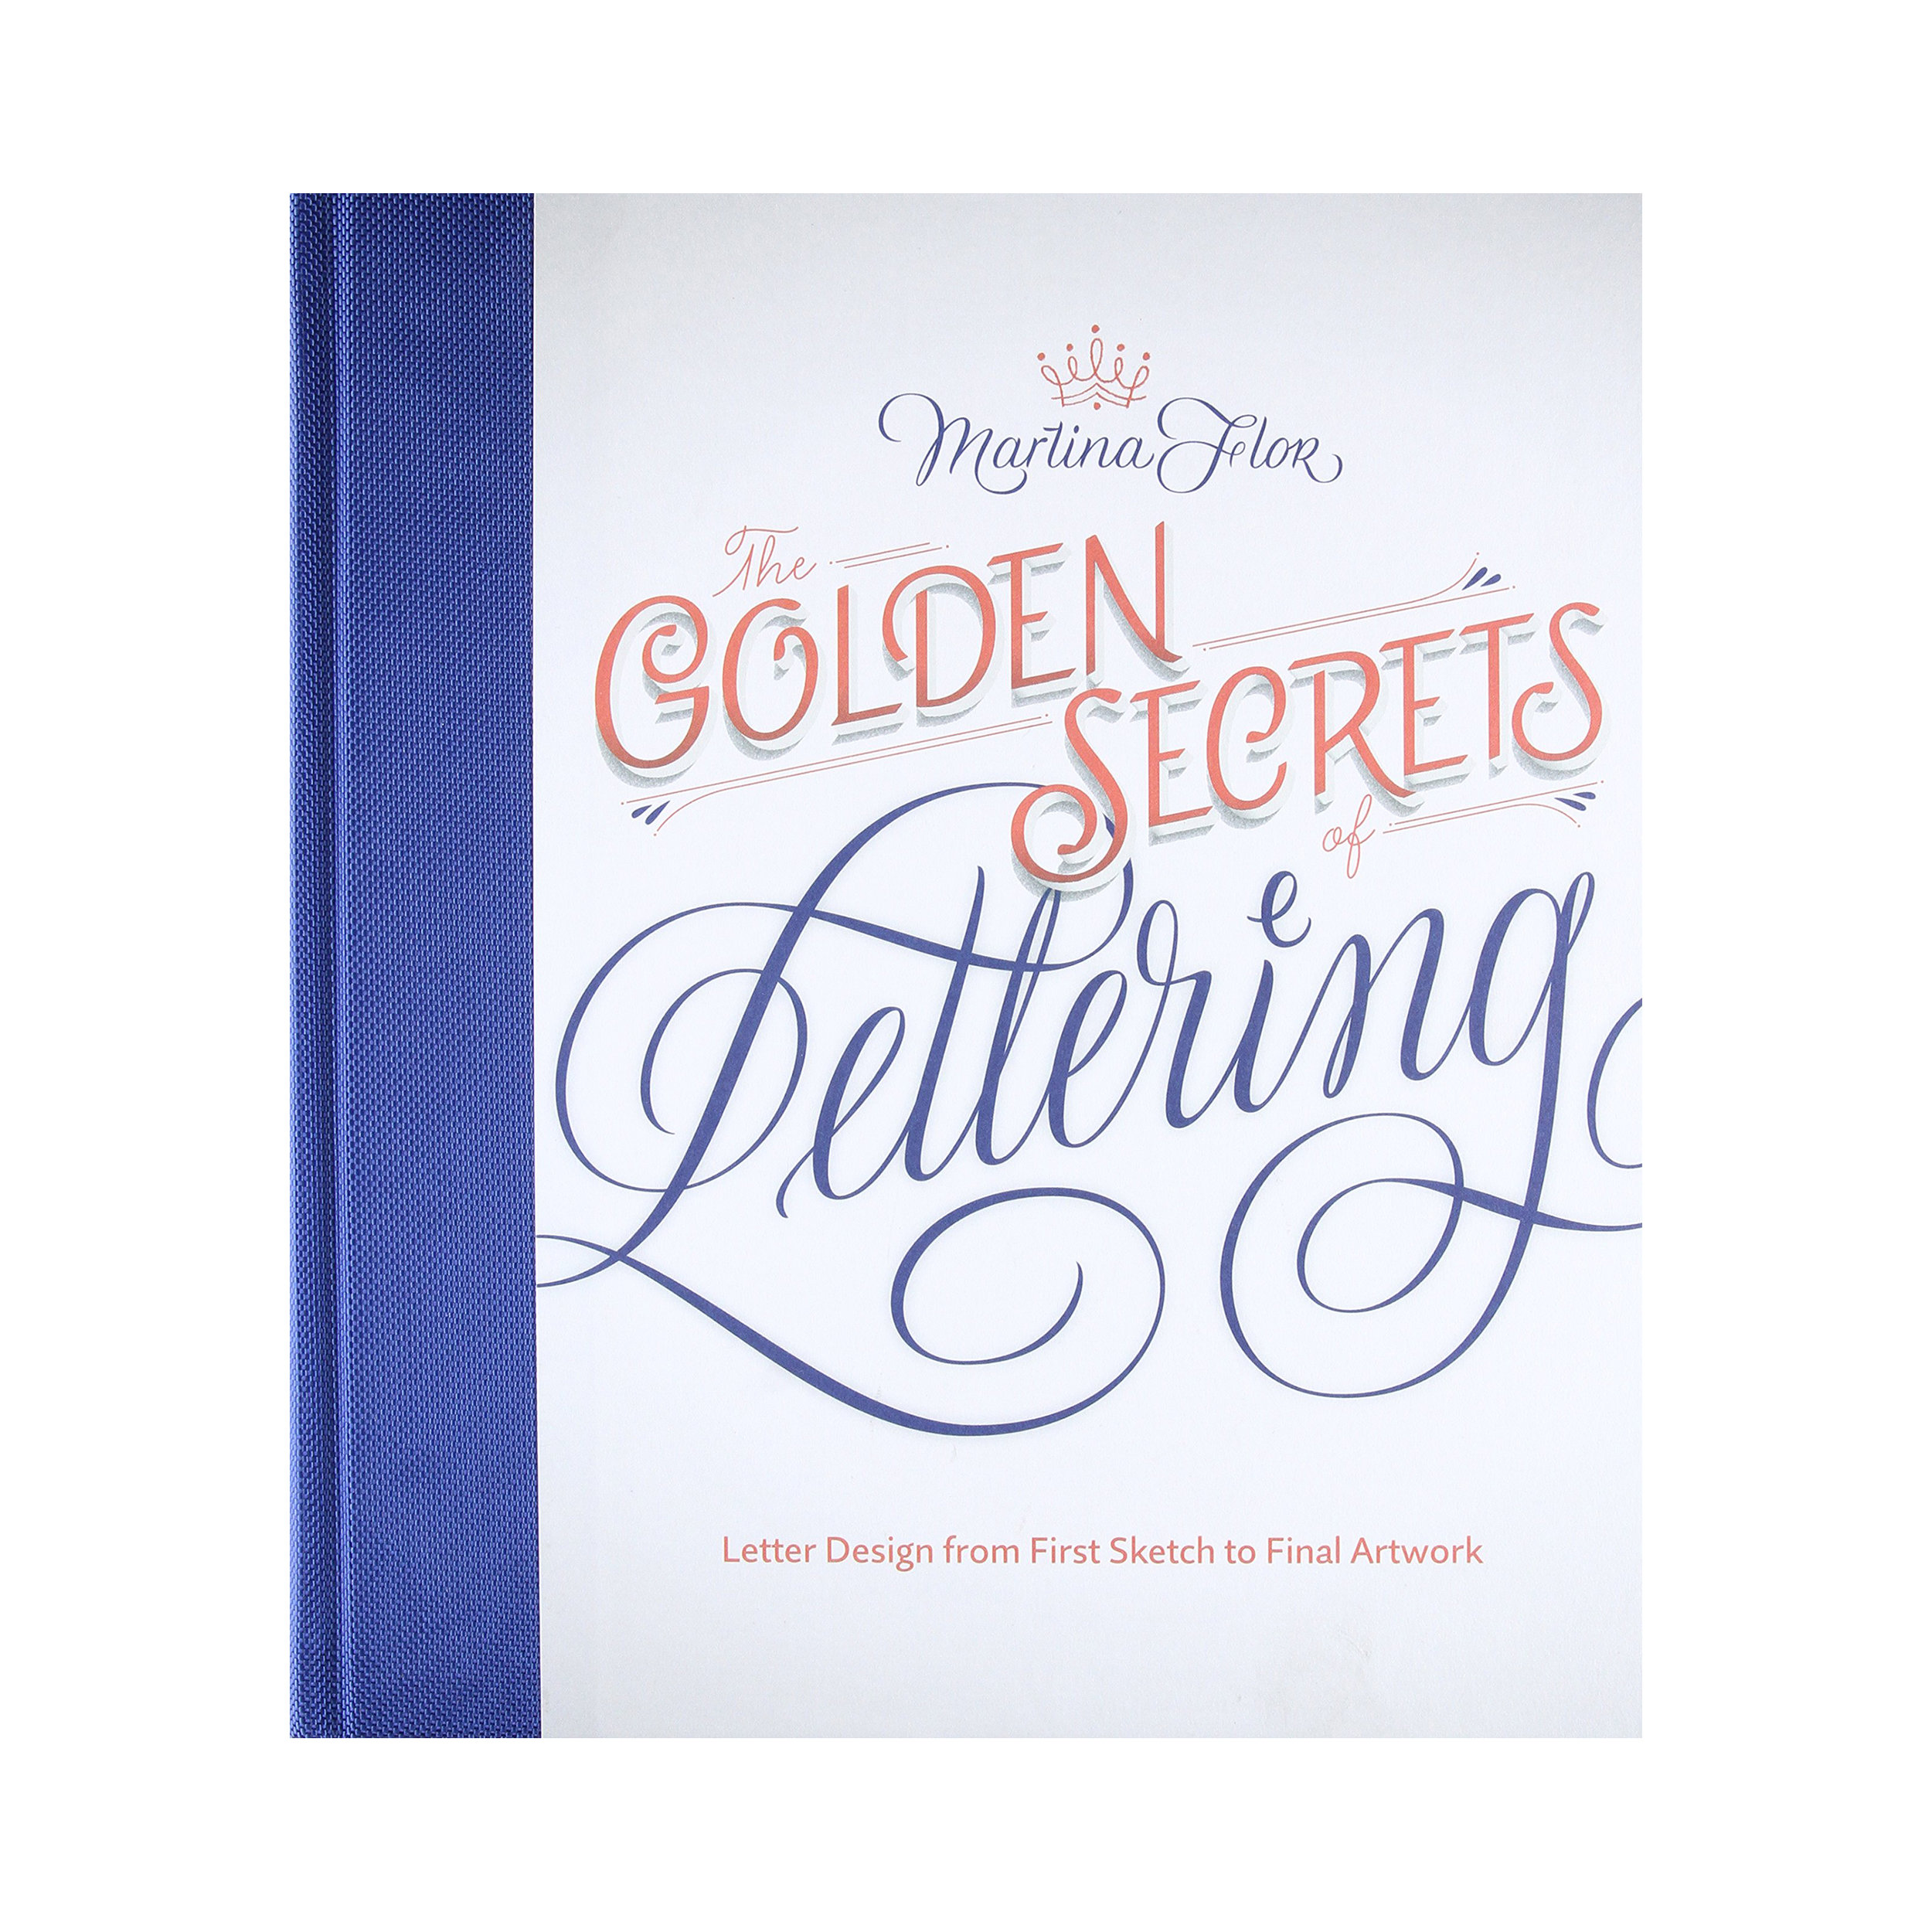 Golden Secrets of Lettering by Martina Flor